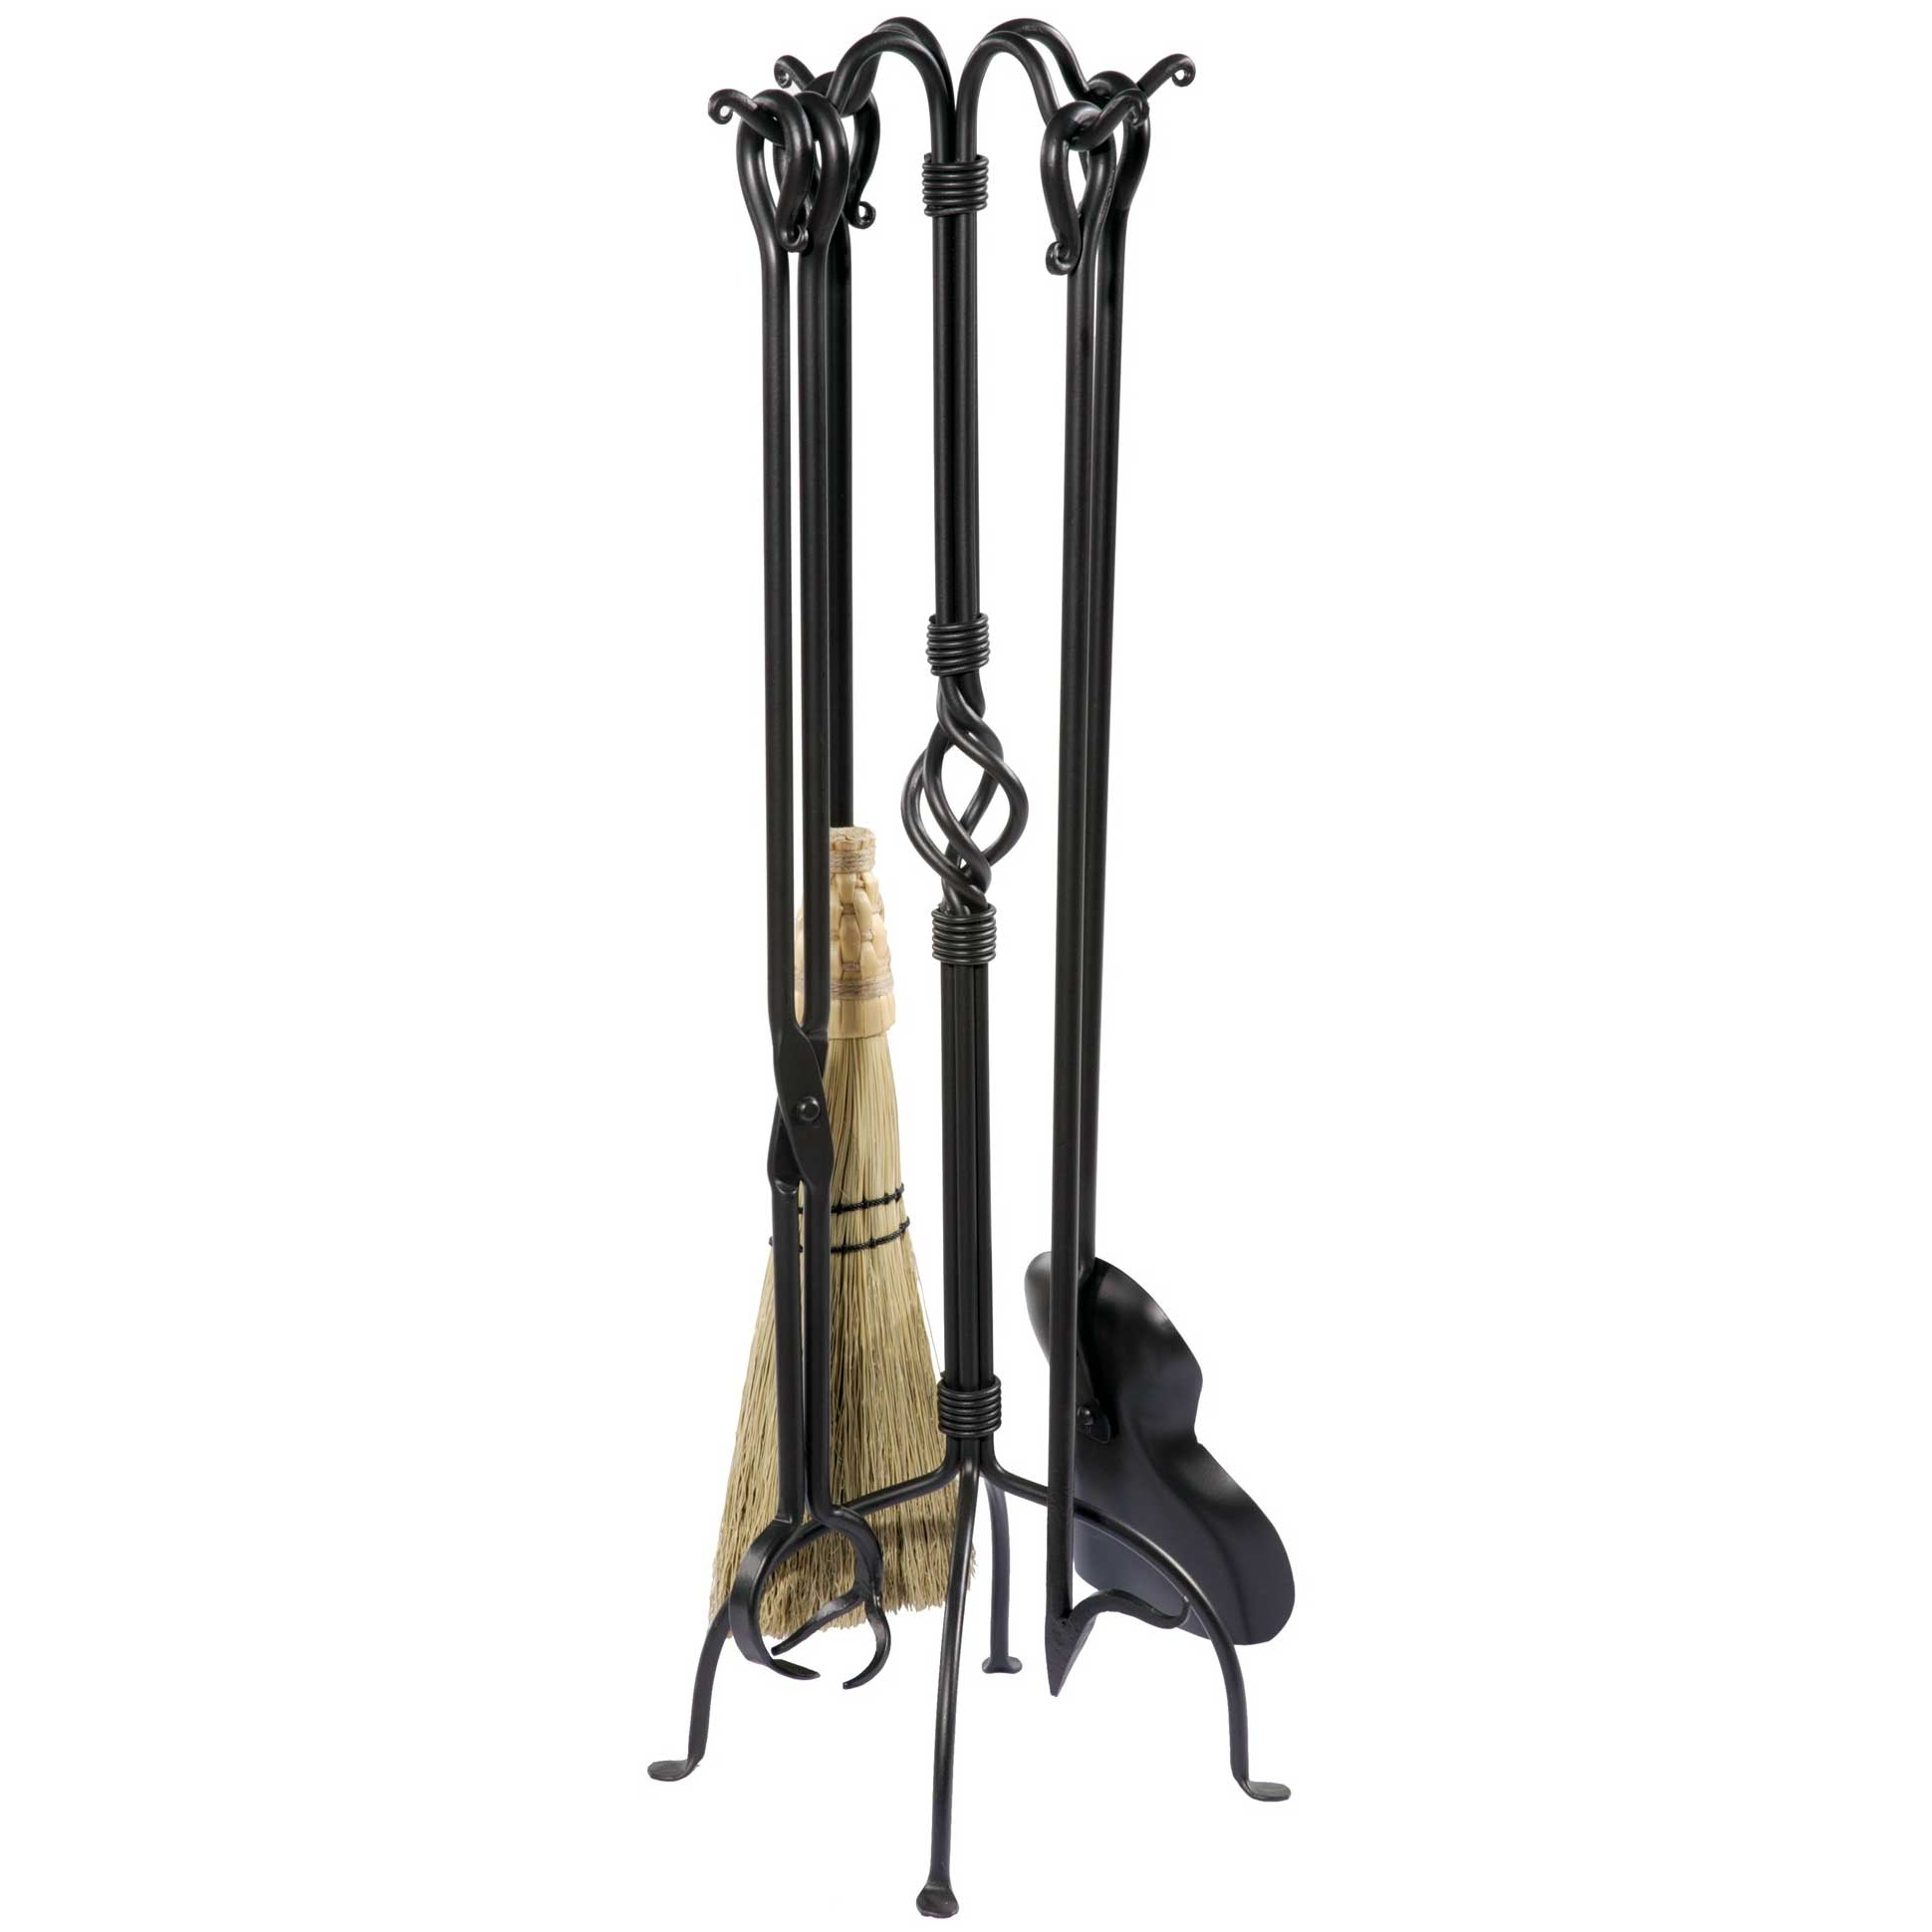 Shop TWI for wrought iron fireplace tools and wrought iron fireplace tool set designs with hundreds of options for every finish